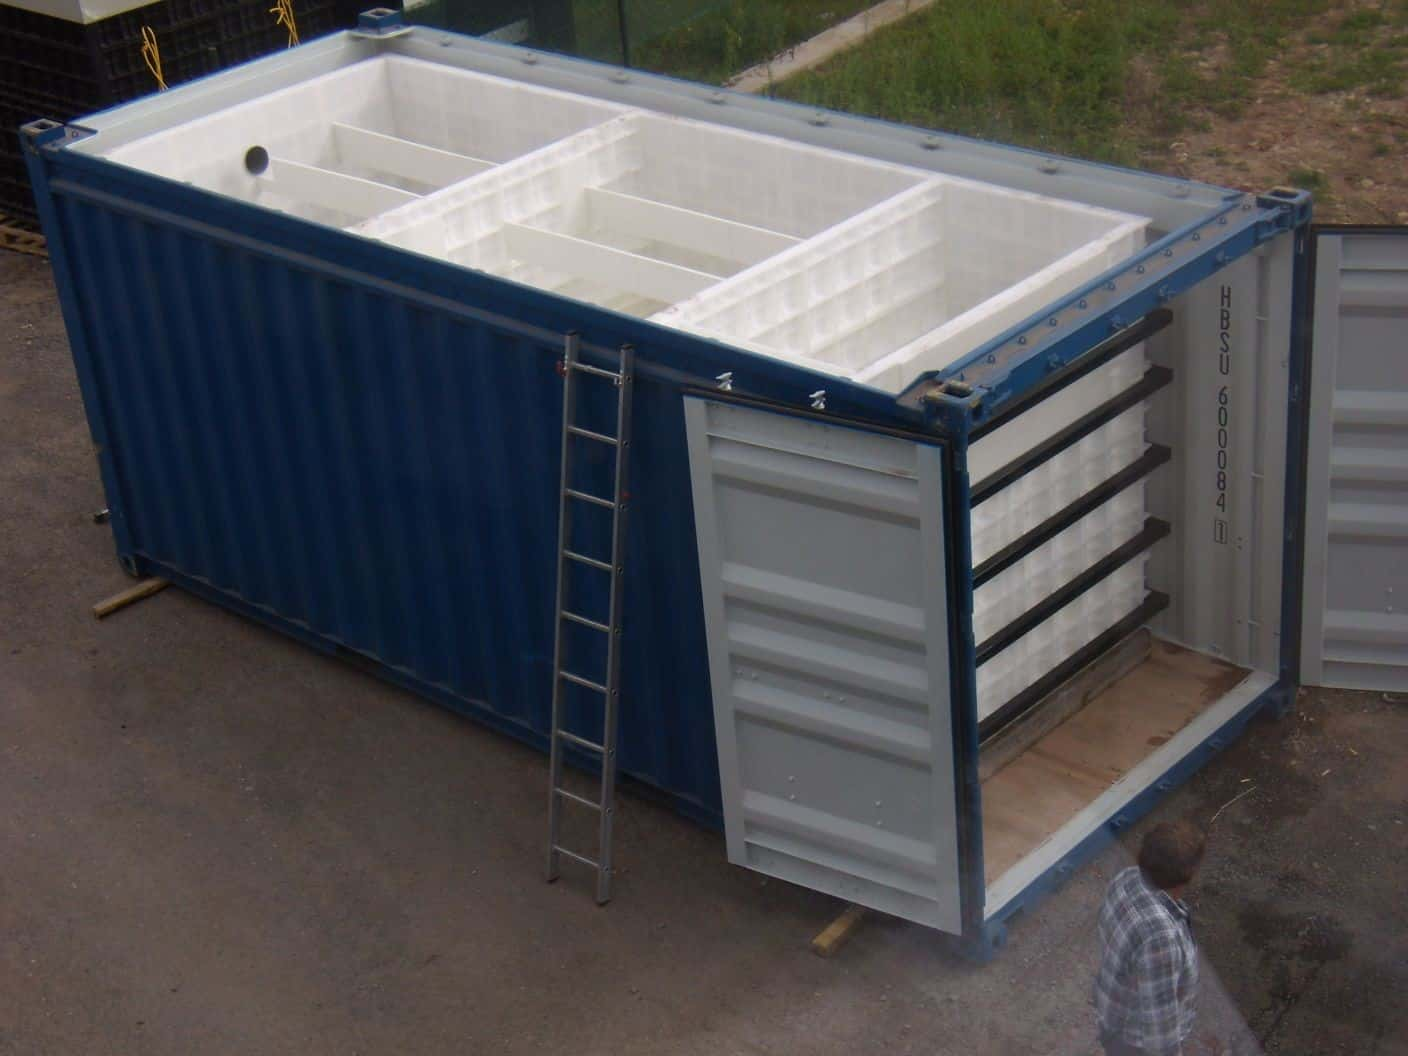 20 foot BioContainer under production